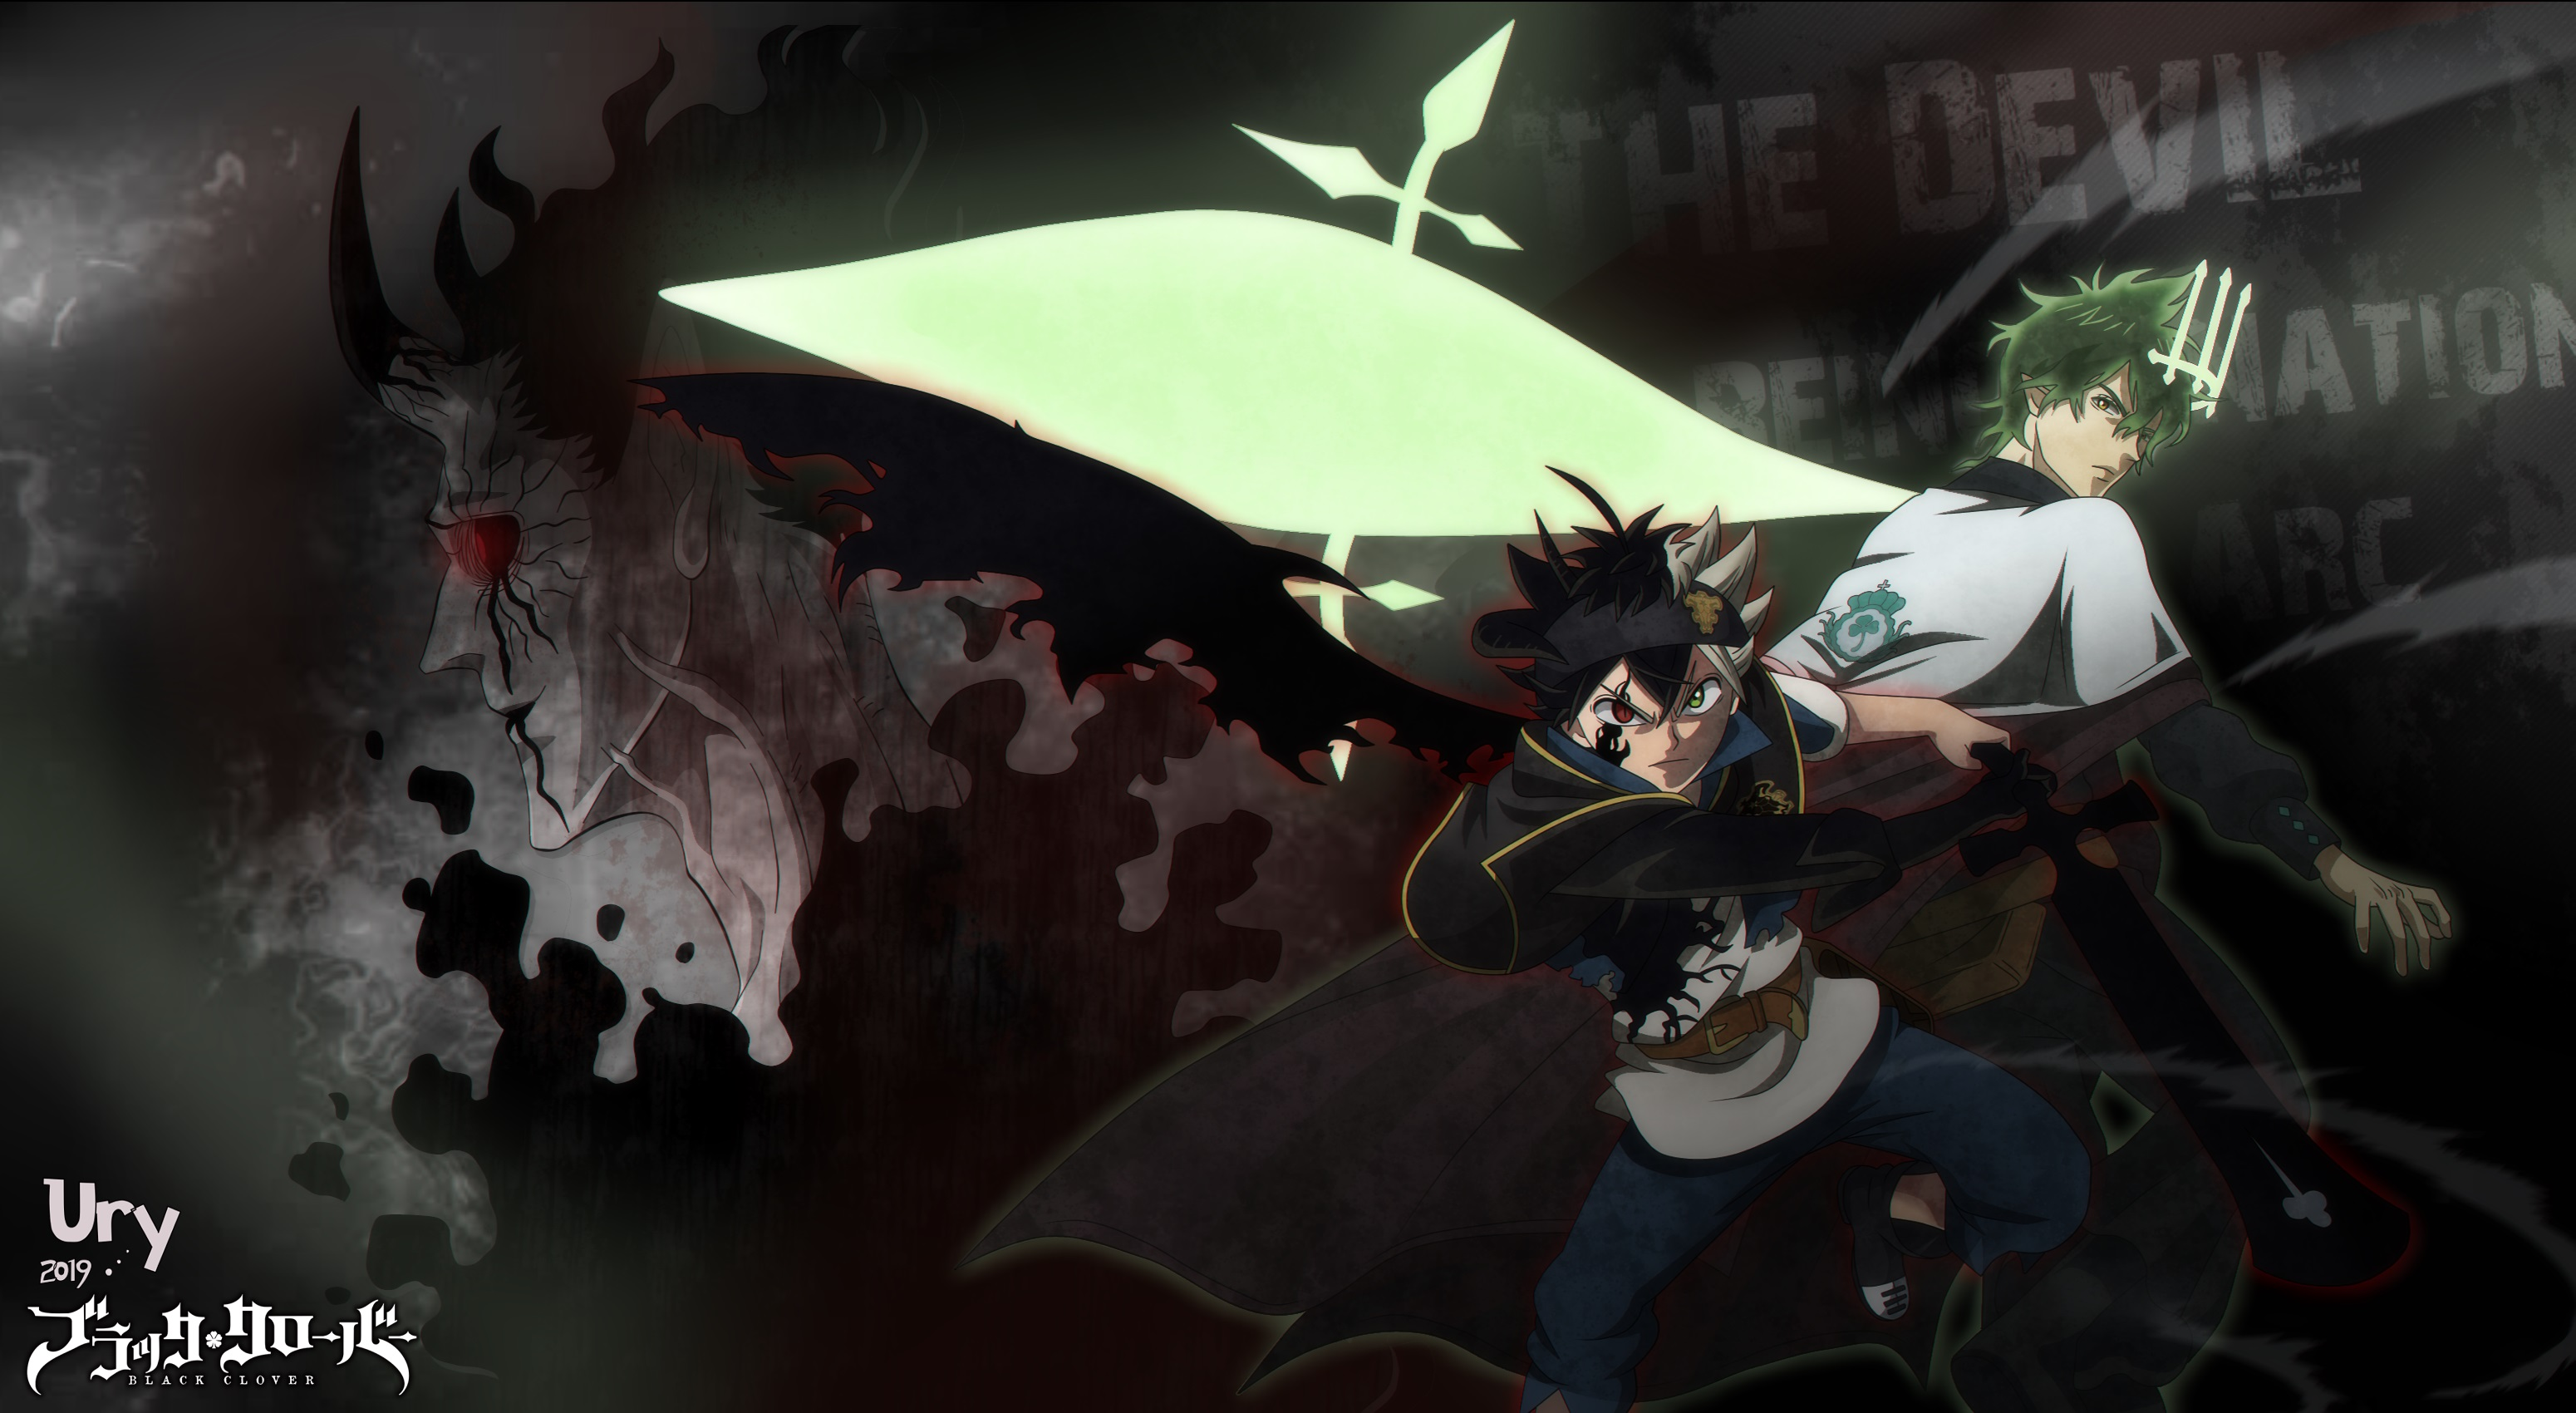 Black Clover Hd Wallpaper Background Image 3100x1700 Id 1057936 Wallpaper Abyss See what julius novachrono (animedaisukidesu) has discovered on pinterest, the world's biggest collection of ideas. black clover hd wallpaper background